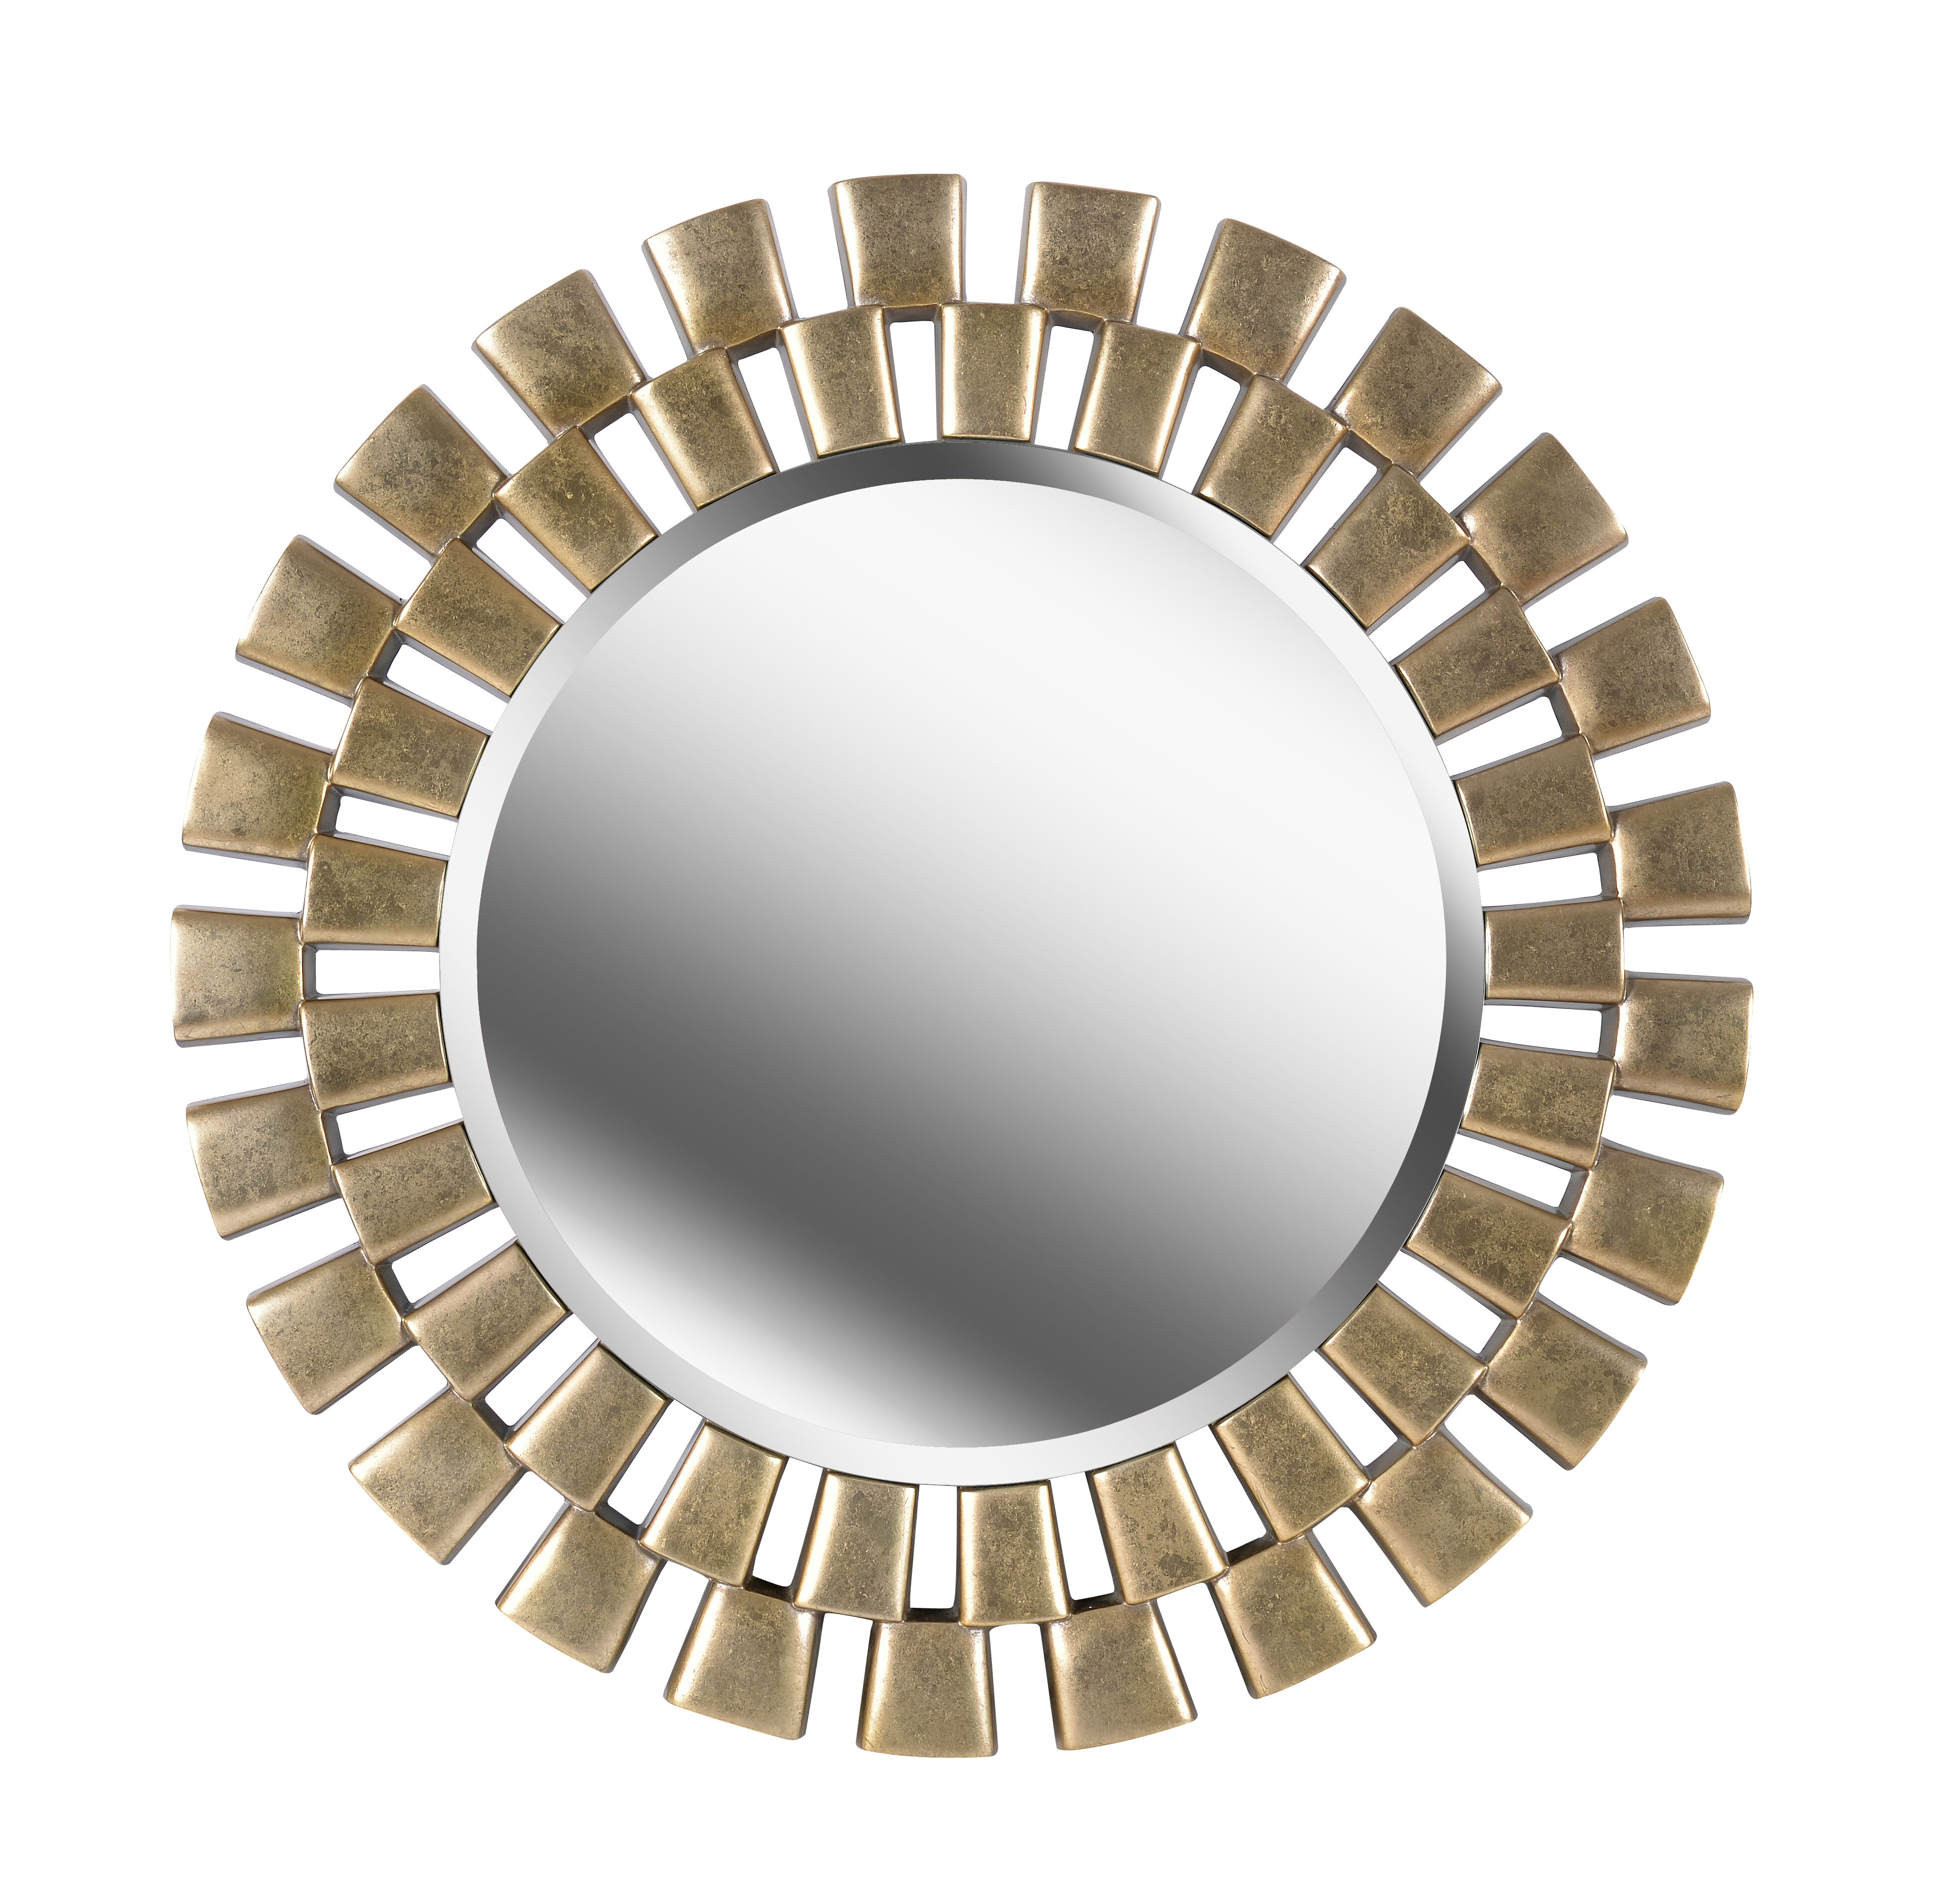 Glam Beveled Accent Mirror Pertaining To Lake Park Beveled Beaded Accent Wall Mirrors (View 14 of 20)